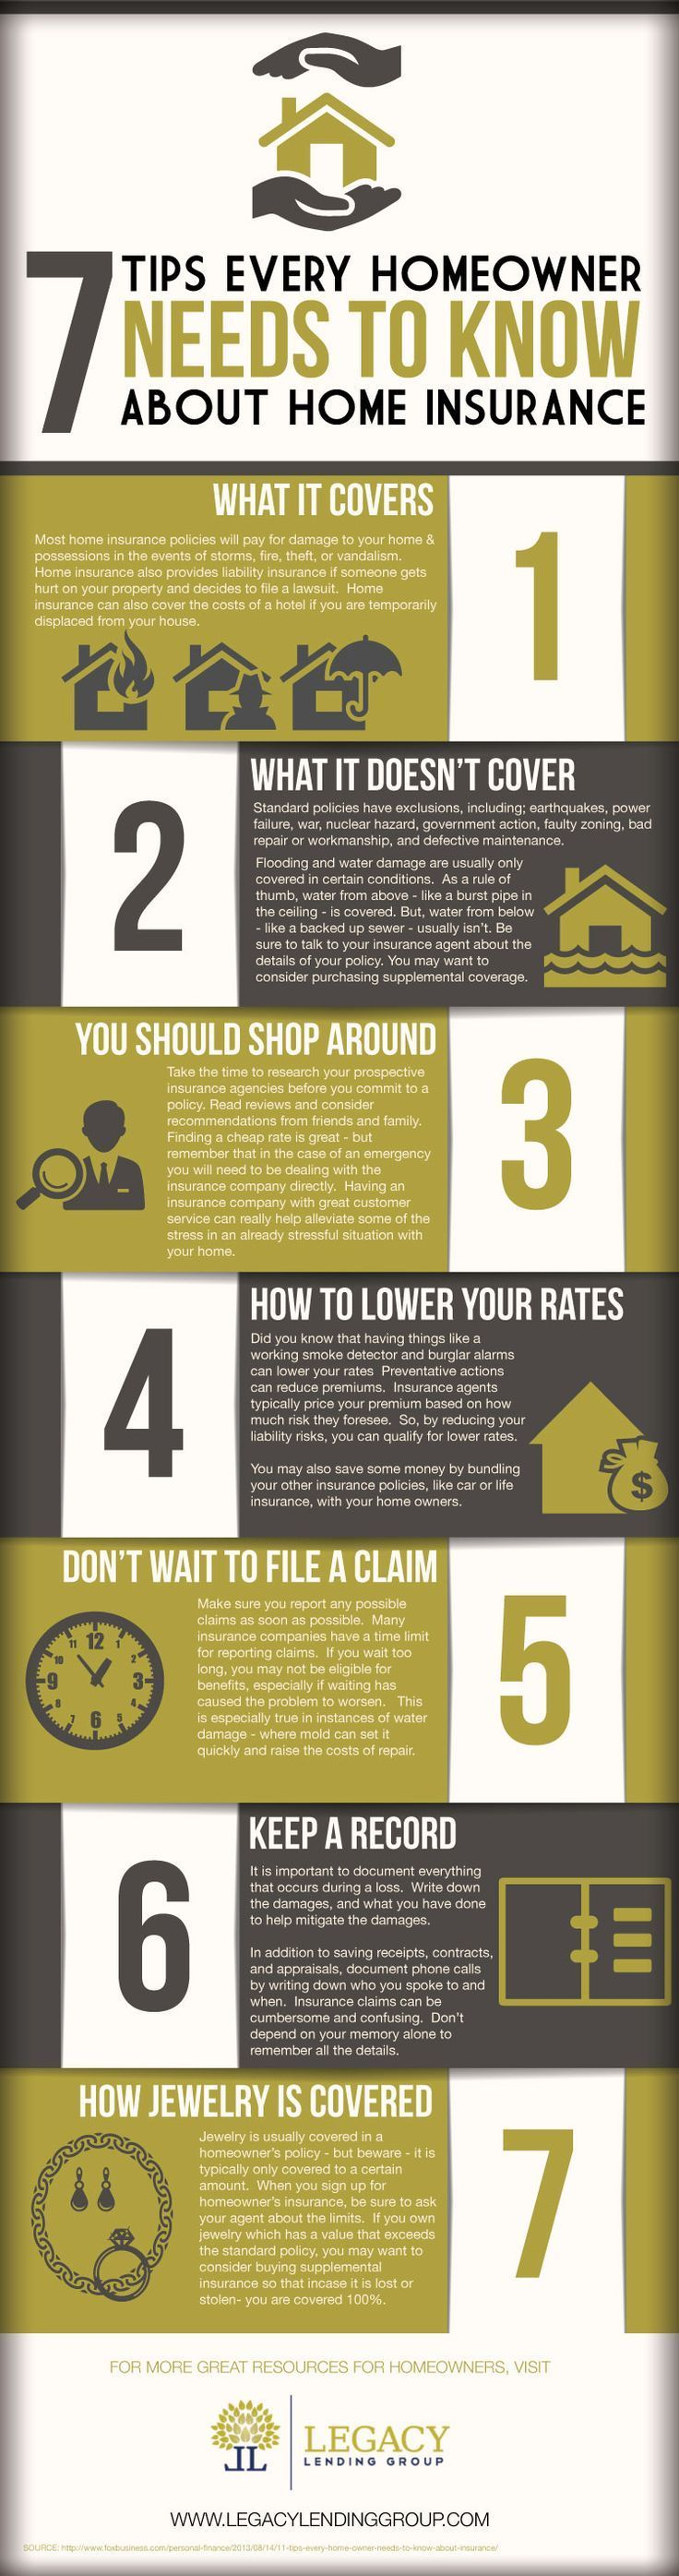 7 Tips Every Homeowner Needs to Know About Home Insurance James Baldi Somerset Powerhouse- Realtor Powerhouse Real Estate Network - Supreme Realty Pro's www.supremerealtypros.com 508-642-5221 Real Estate Broker offering 100% commission in Massachusetts , Realtors in MA , Real estate Agent in MA , Real estate Companies in MA